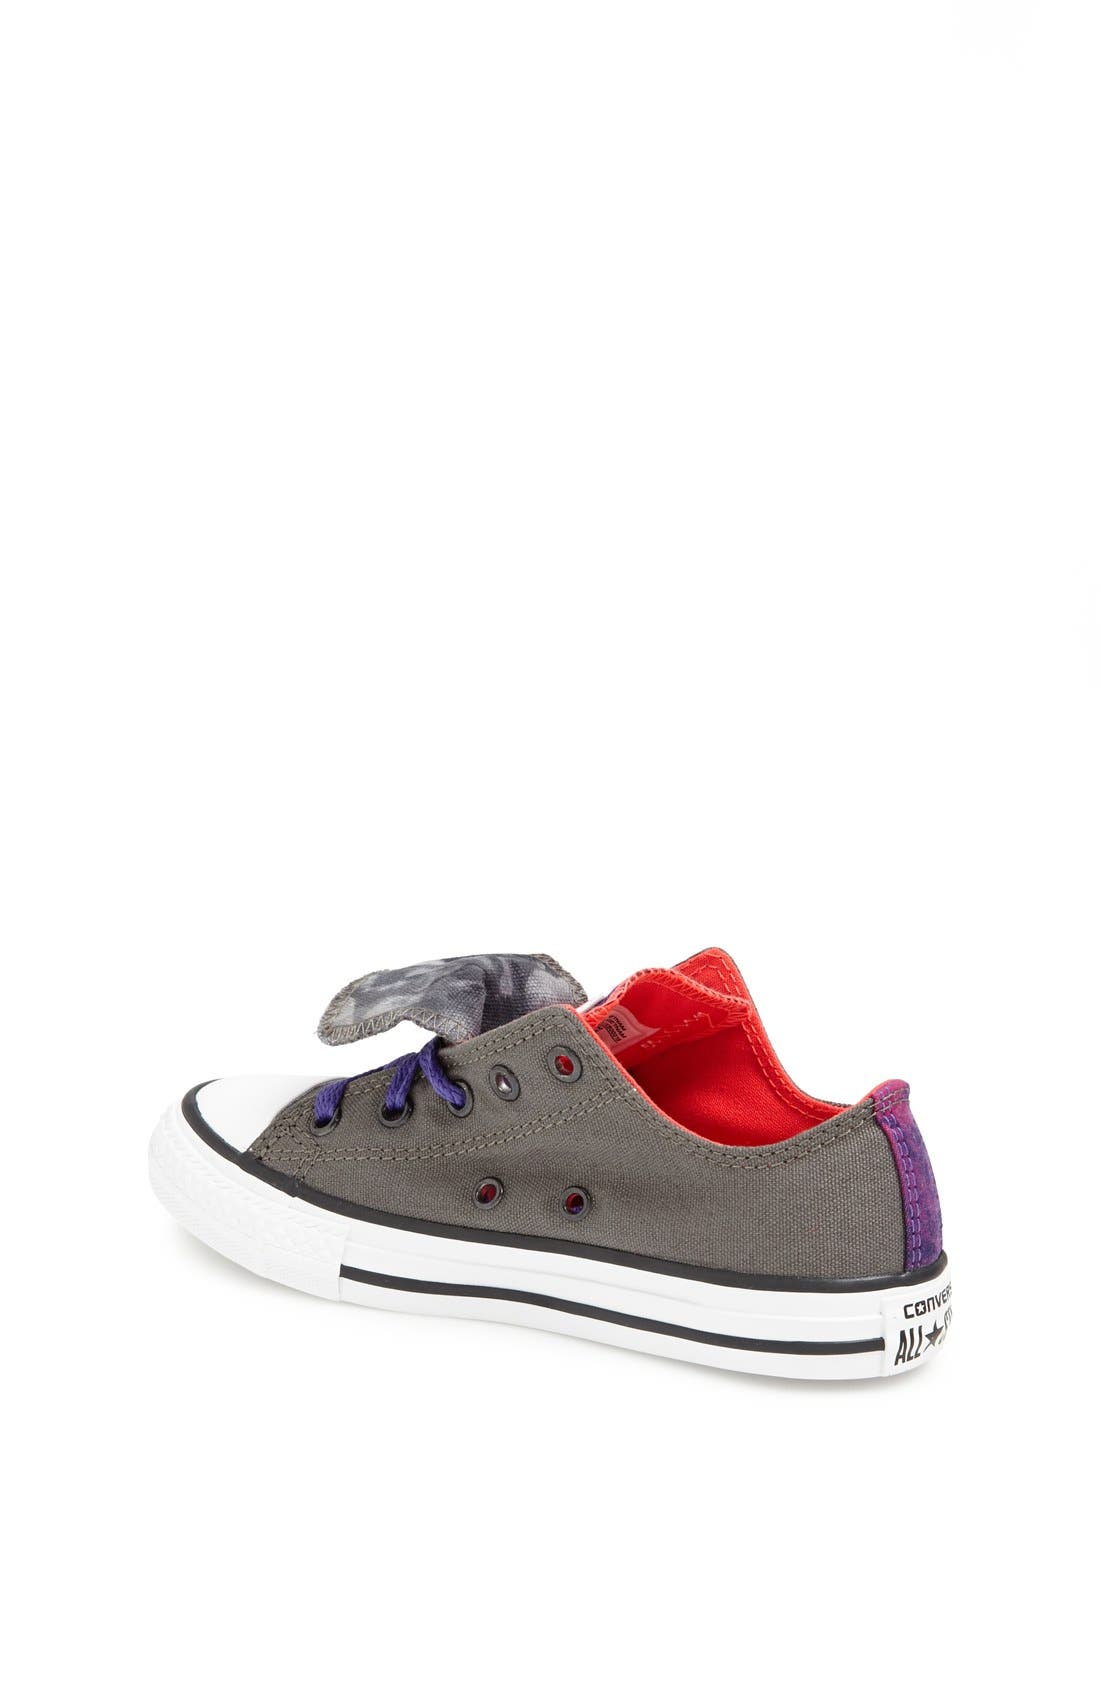 Alternate Image 3  - Converse Chuck Taylor® Double Zip Sneaker (Toddler, Little Kid & Big Kid)